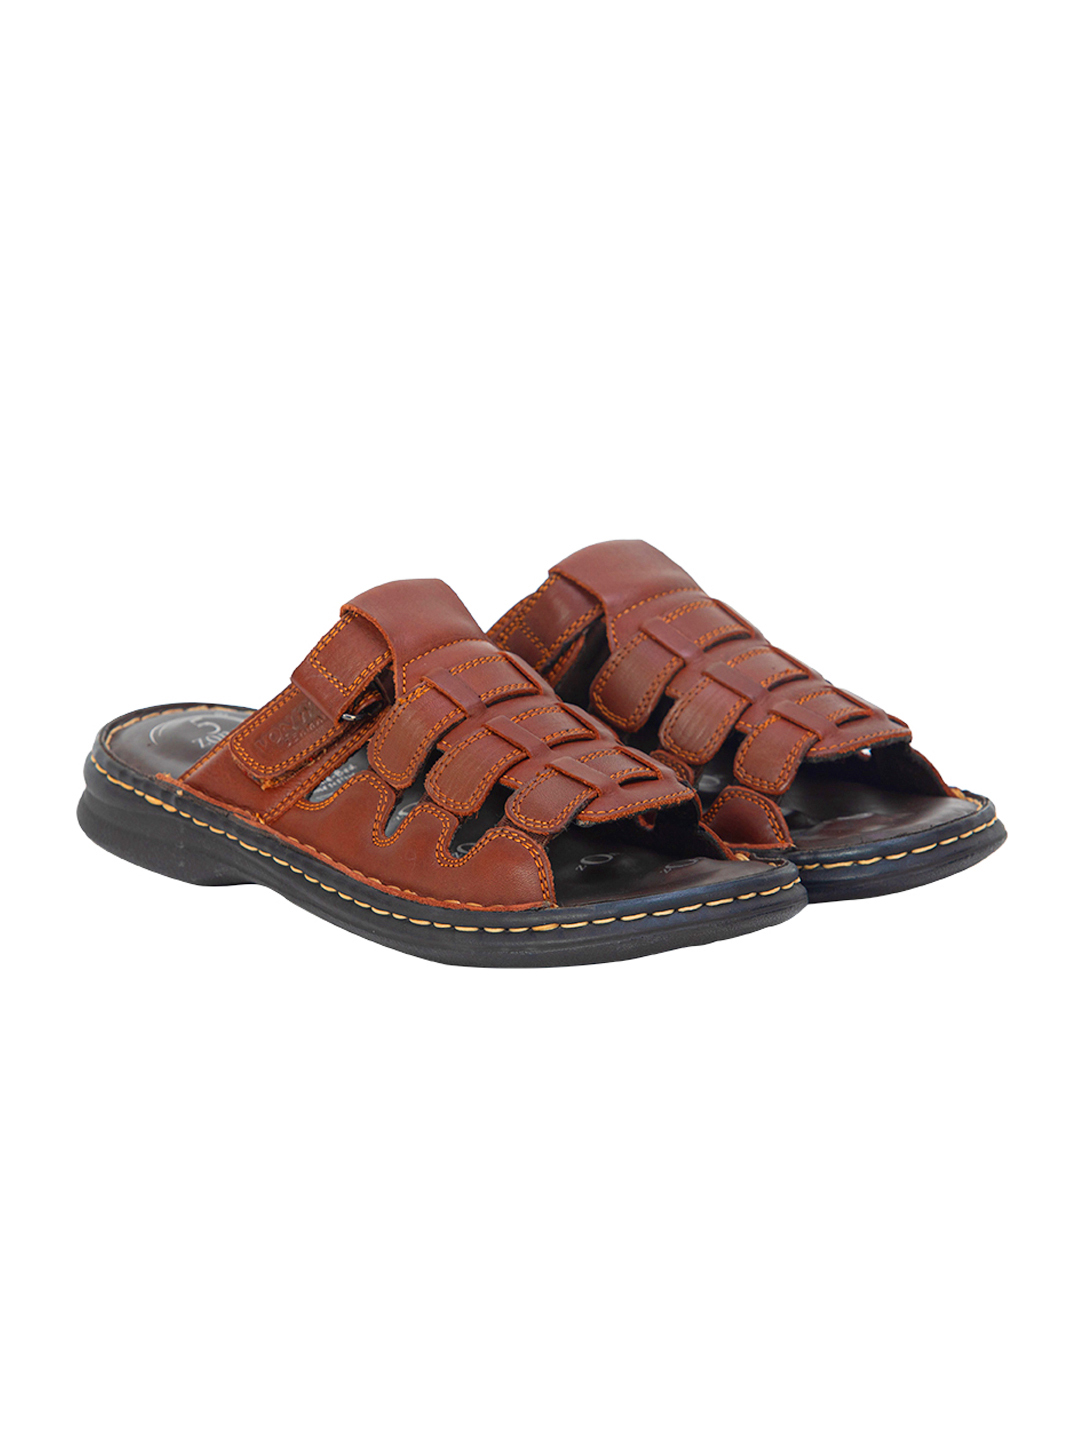 VON WELLX GERMANY COMFORT BROWN CONNOR SLIPPERS